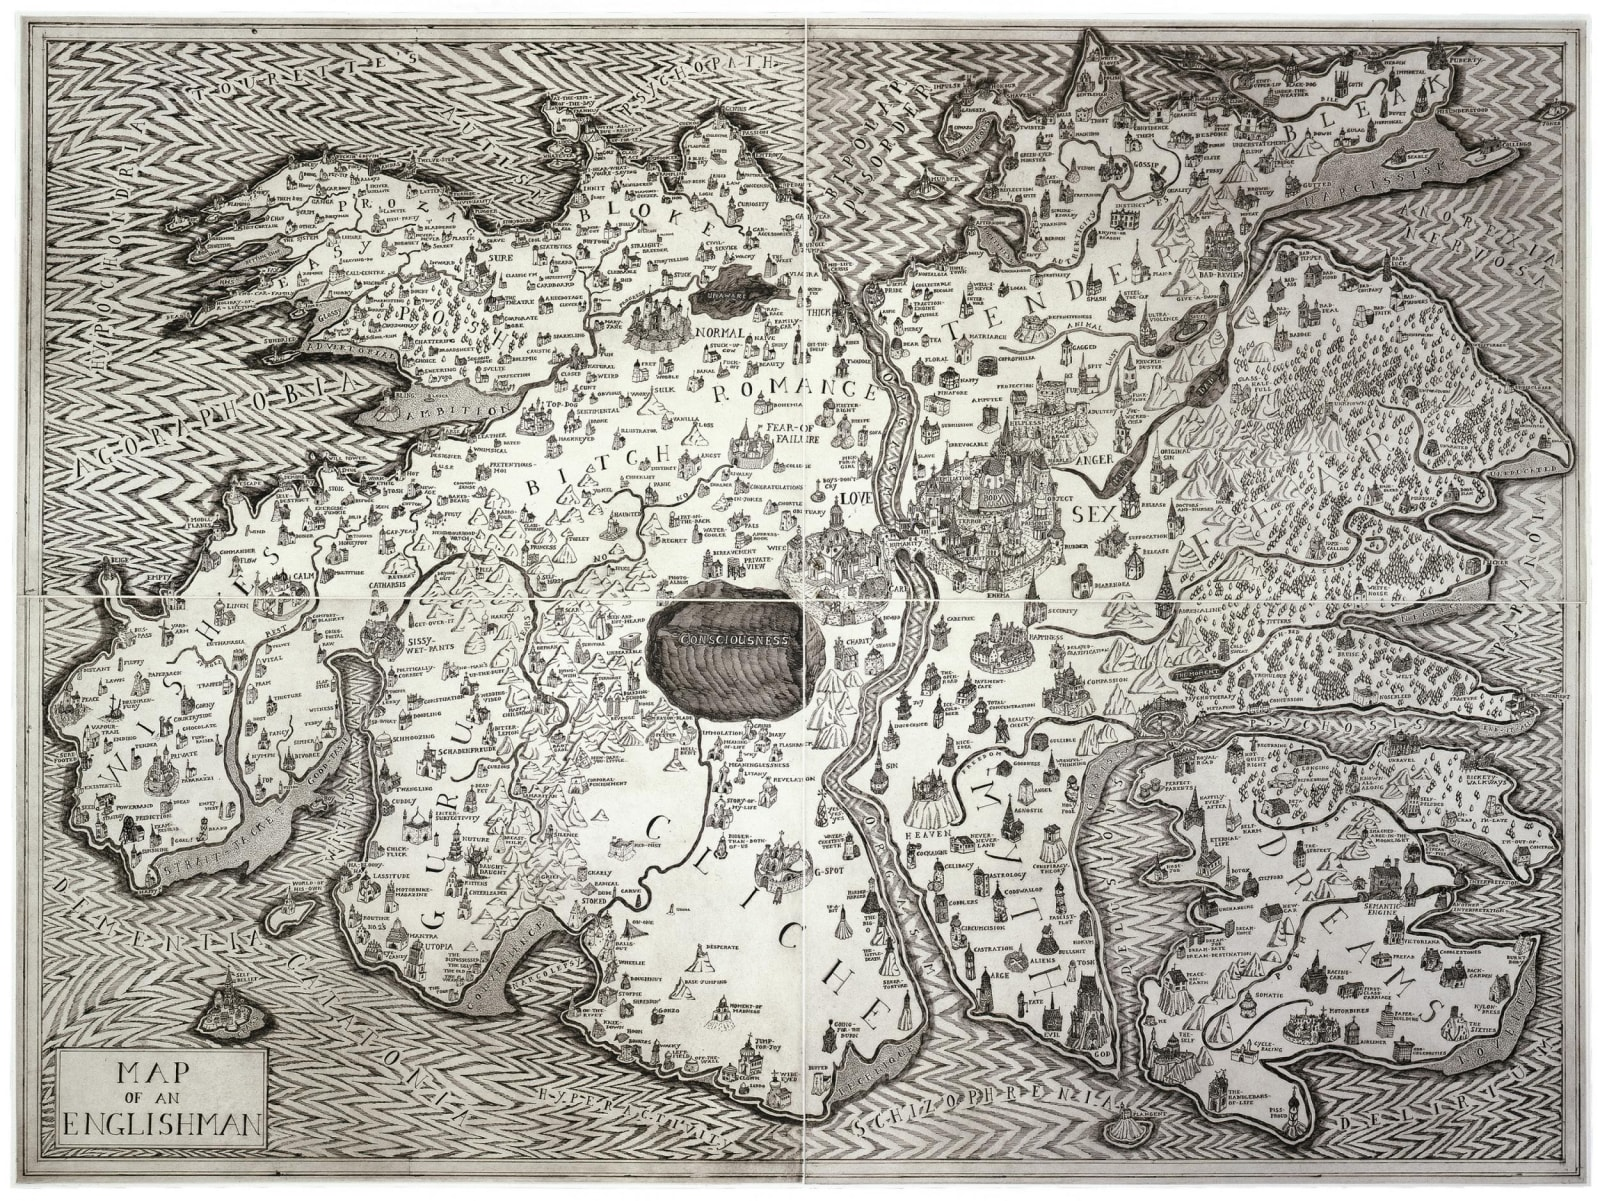 Grayson Perry, Map of an Englishman, 2004 Etching